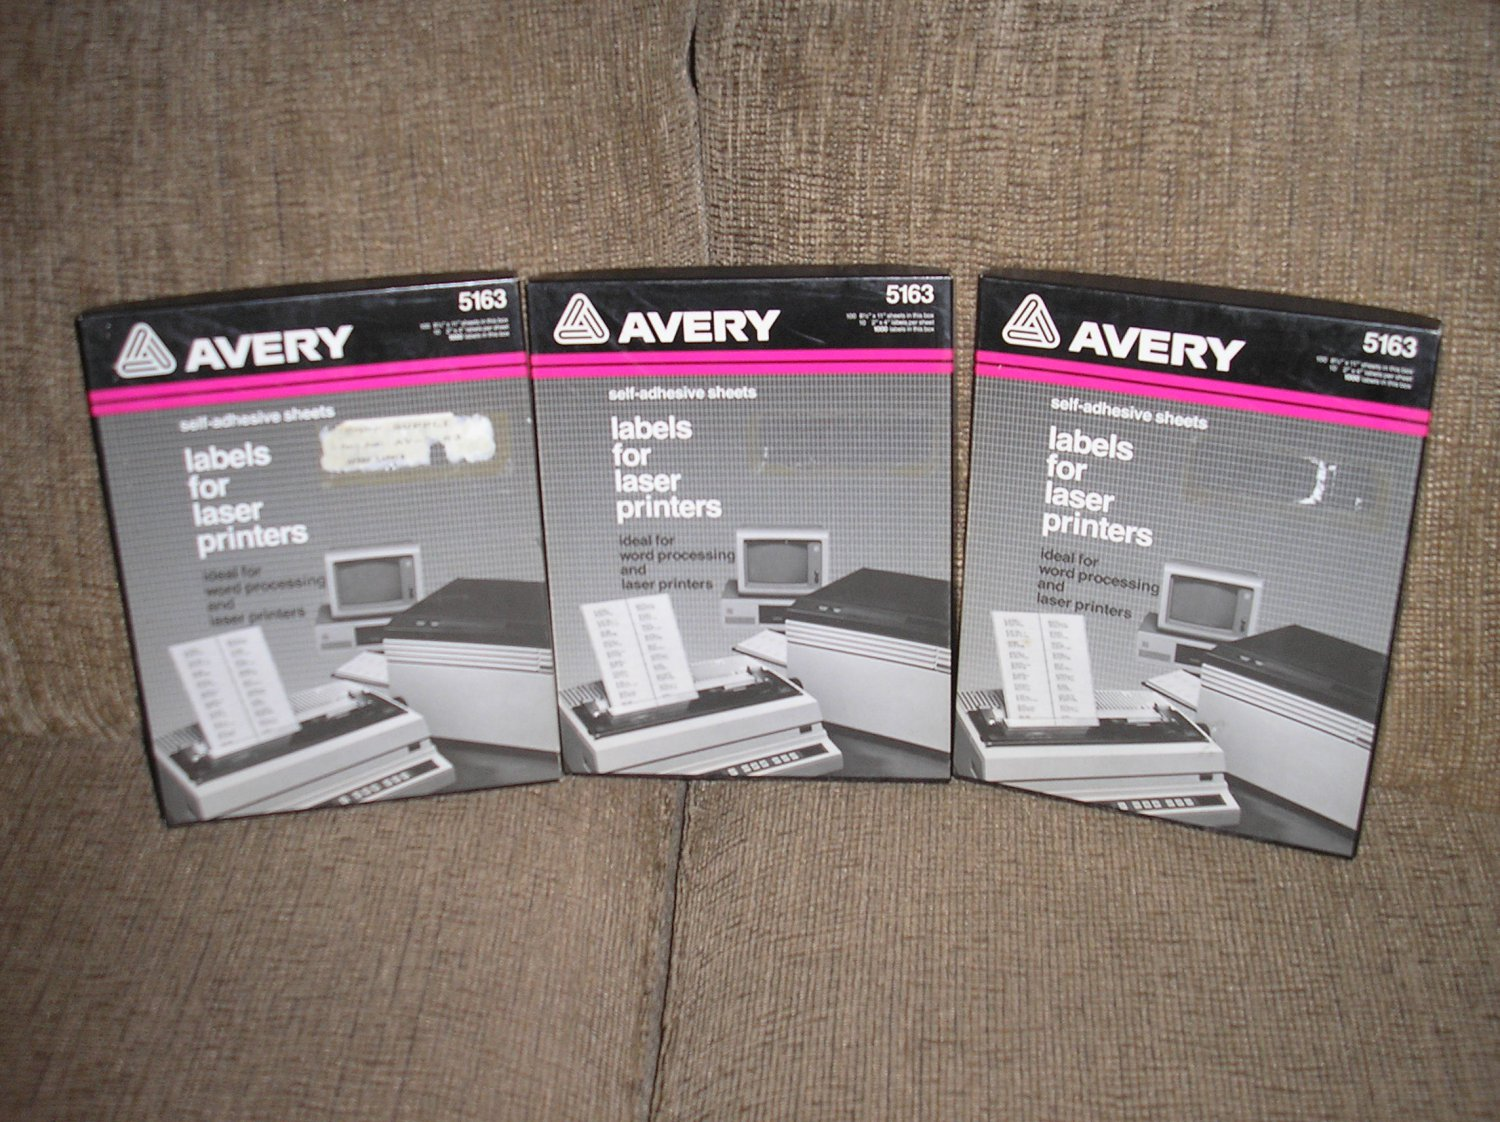 """AVERY 5163 WHITE SELF-ADHESIVE LASER LABELS - 2"""" x 4"""" by Avery - 1000 LABELS - NEW OLD STOCK!"""